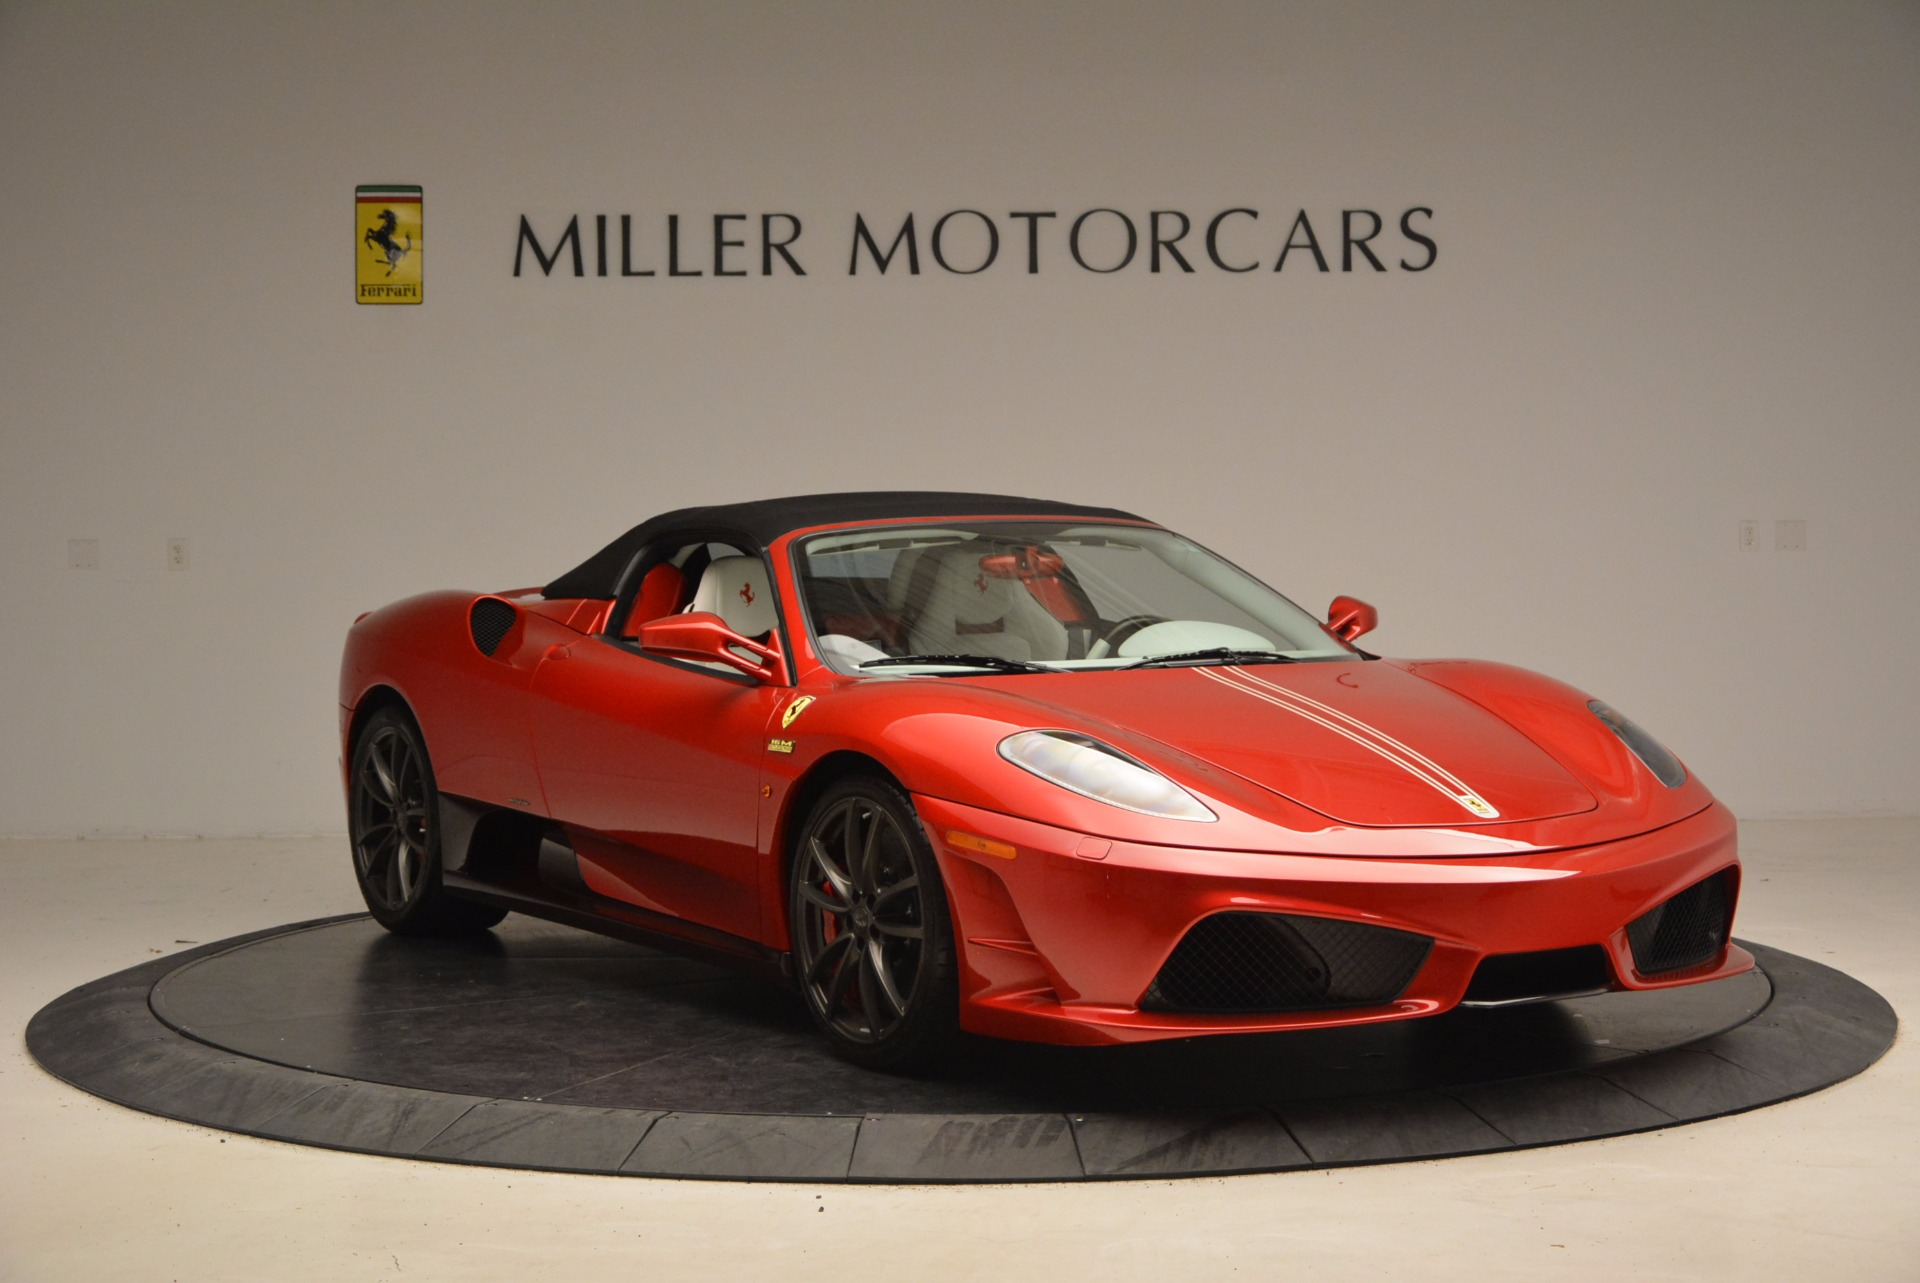 Used 2009 Ferrari F430 Scuderia 16M For Sale In Westport, CT 1398_p23